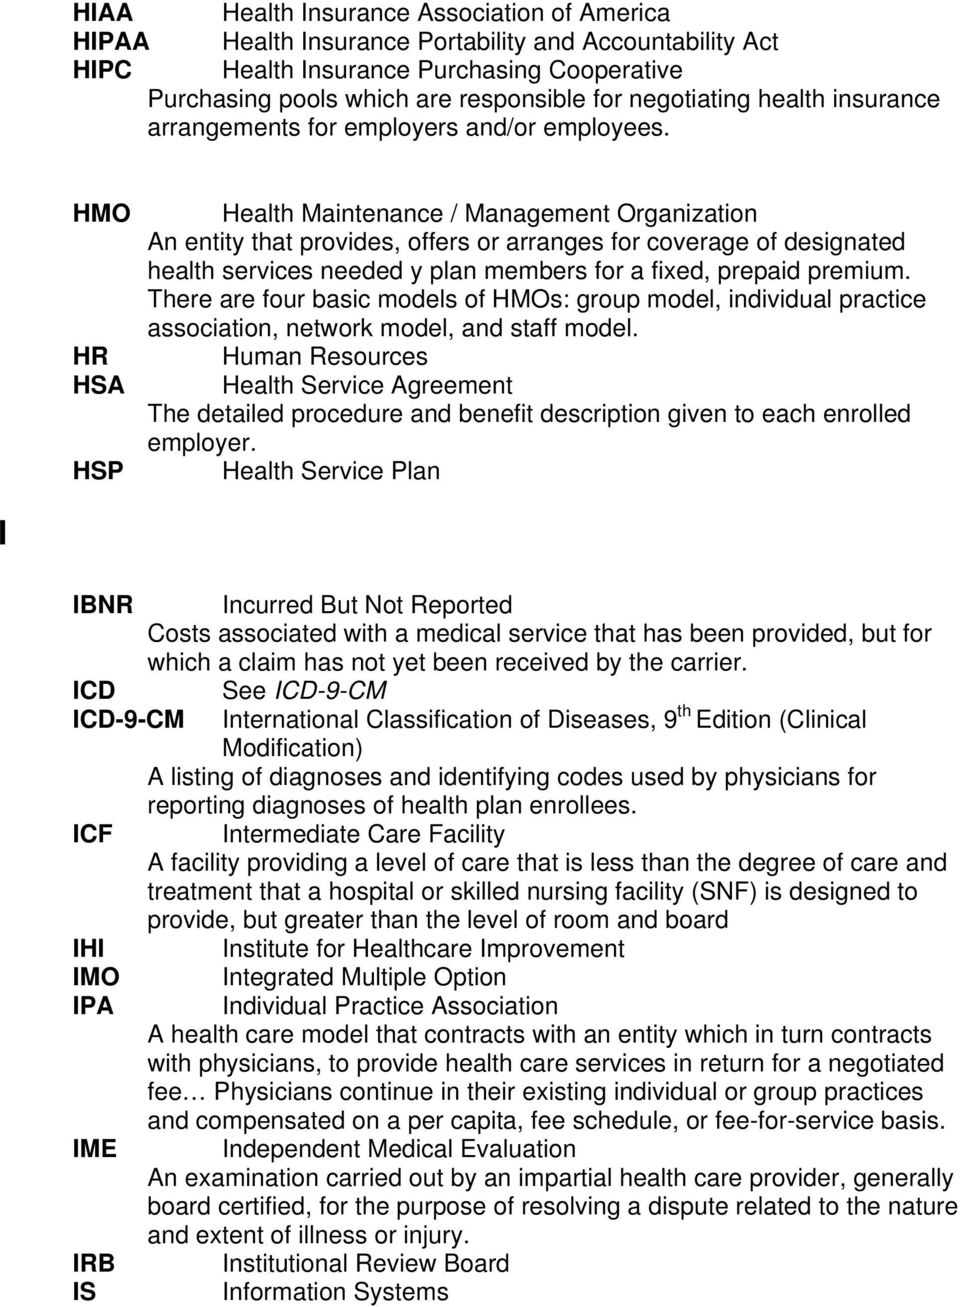 HMO HR HSA HSP Health Maintenance / Management Organization An entity that provides, offers or arranges for coverage of designated health services needed y plan members for a fixed, prepaid premium.